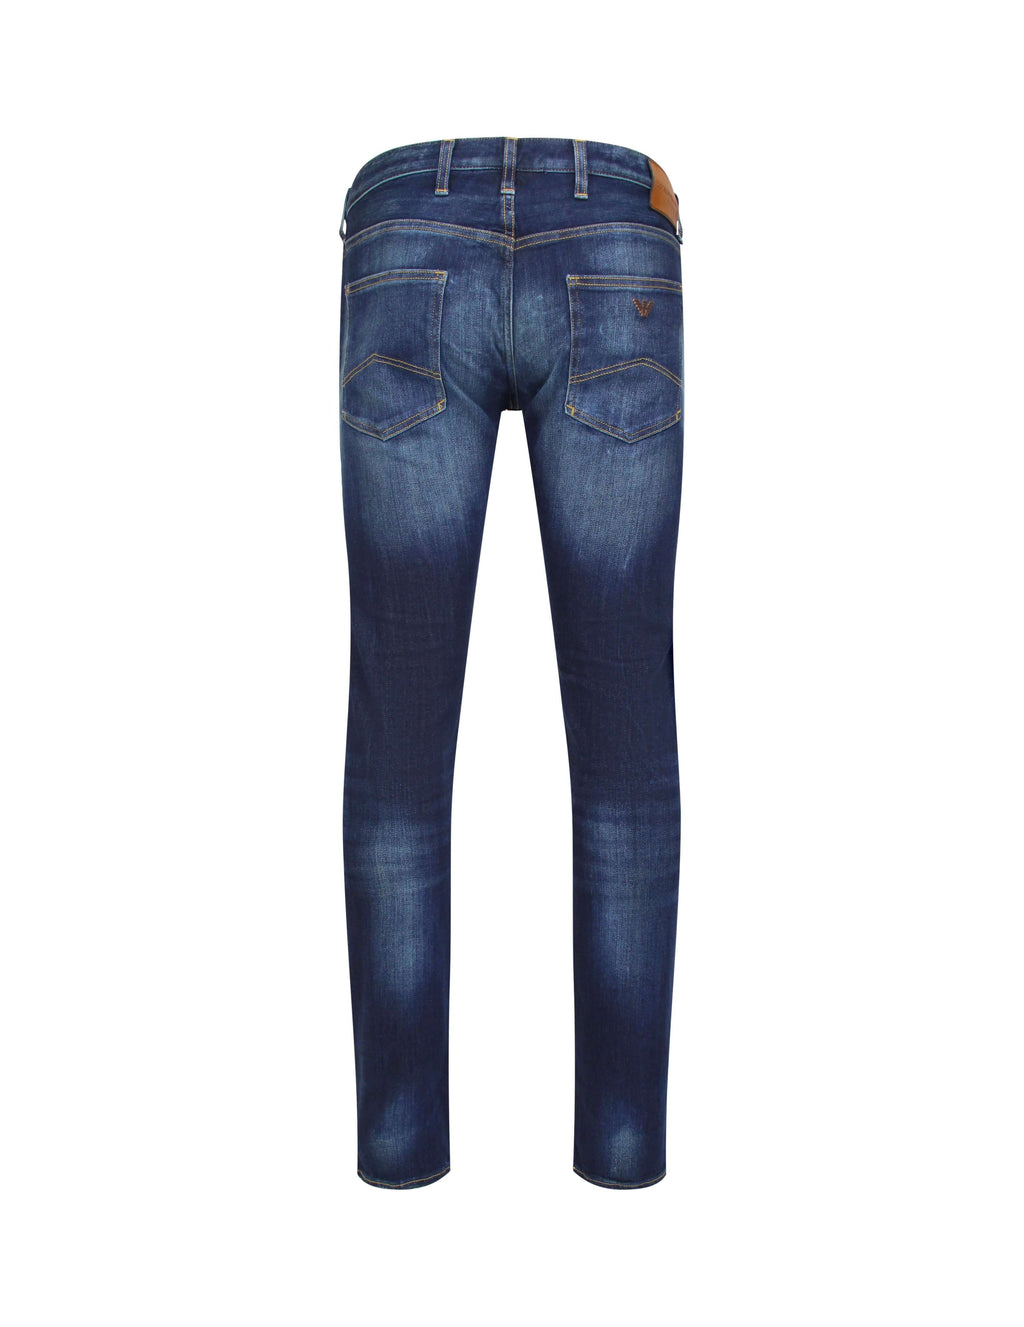 Emporio Armani Men's Giulio Fashion Dark Wash Blue J10 Denim Jeans 371J101D75Z0941